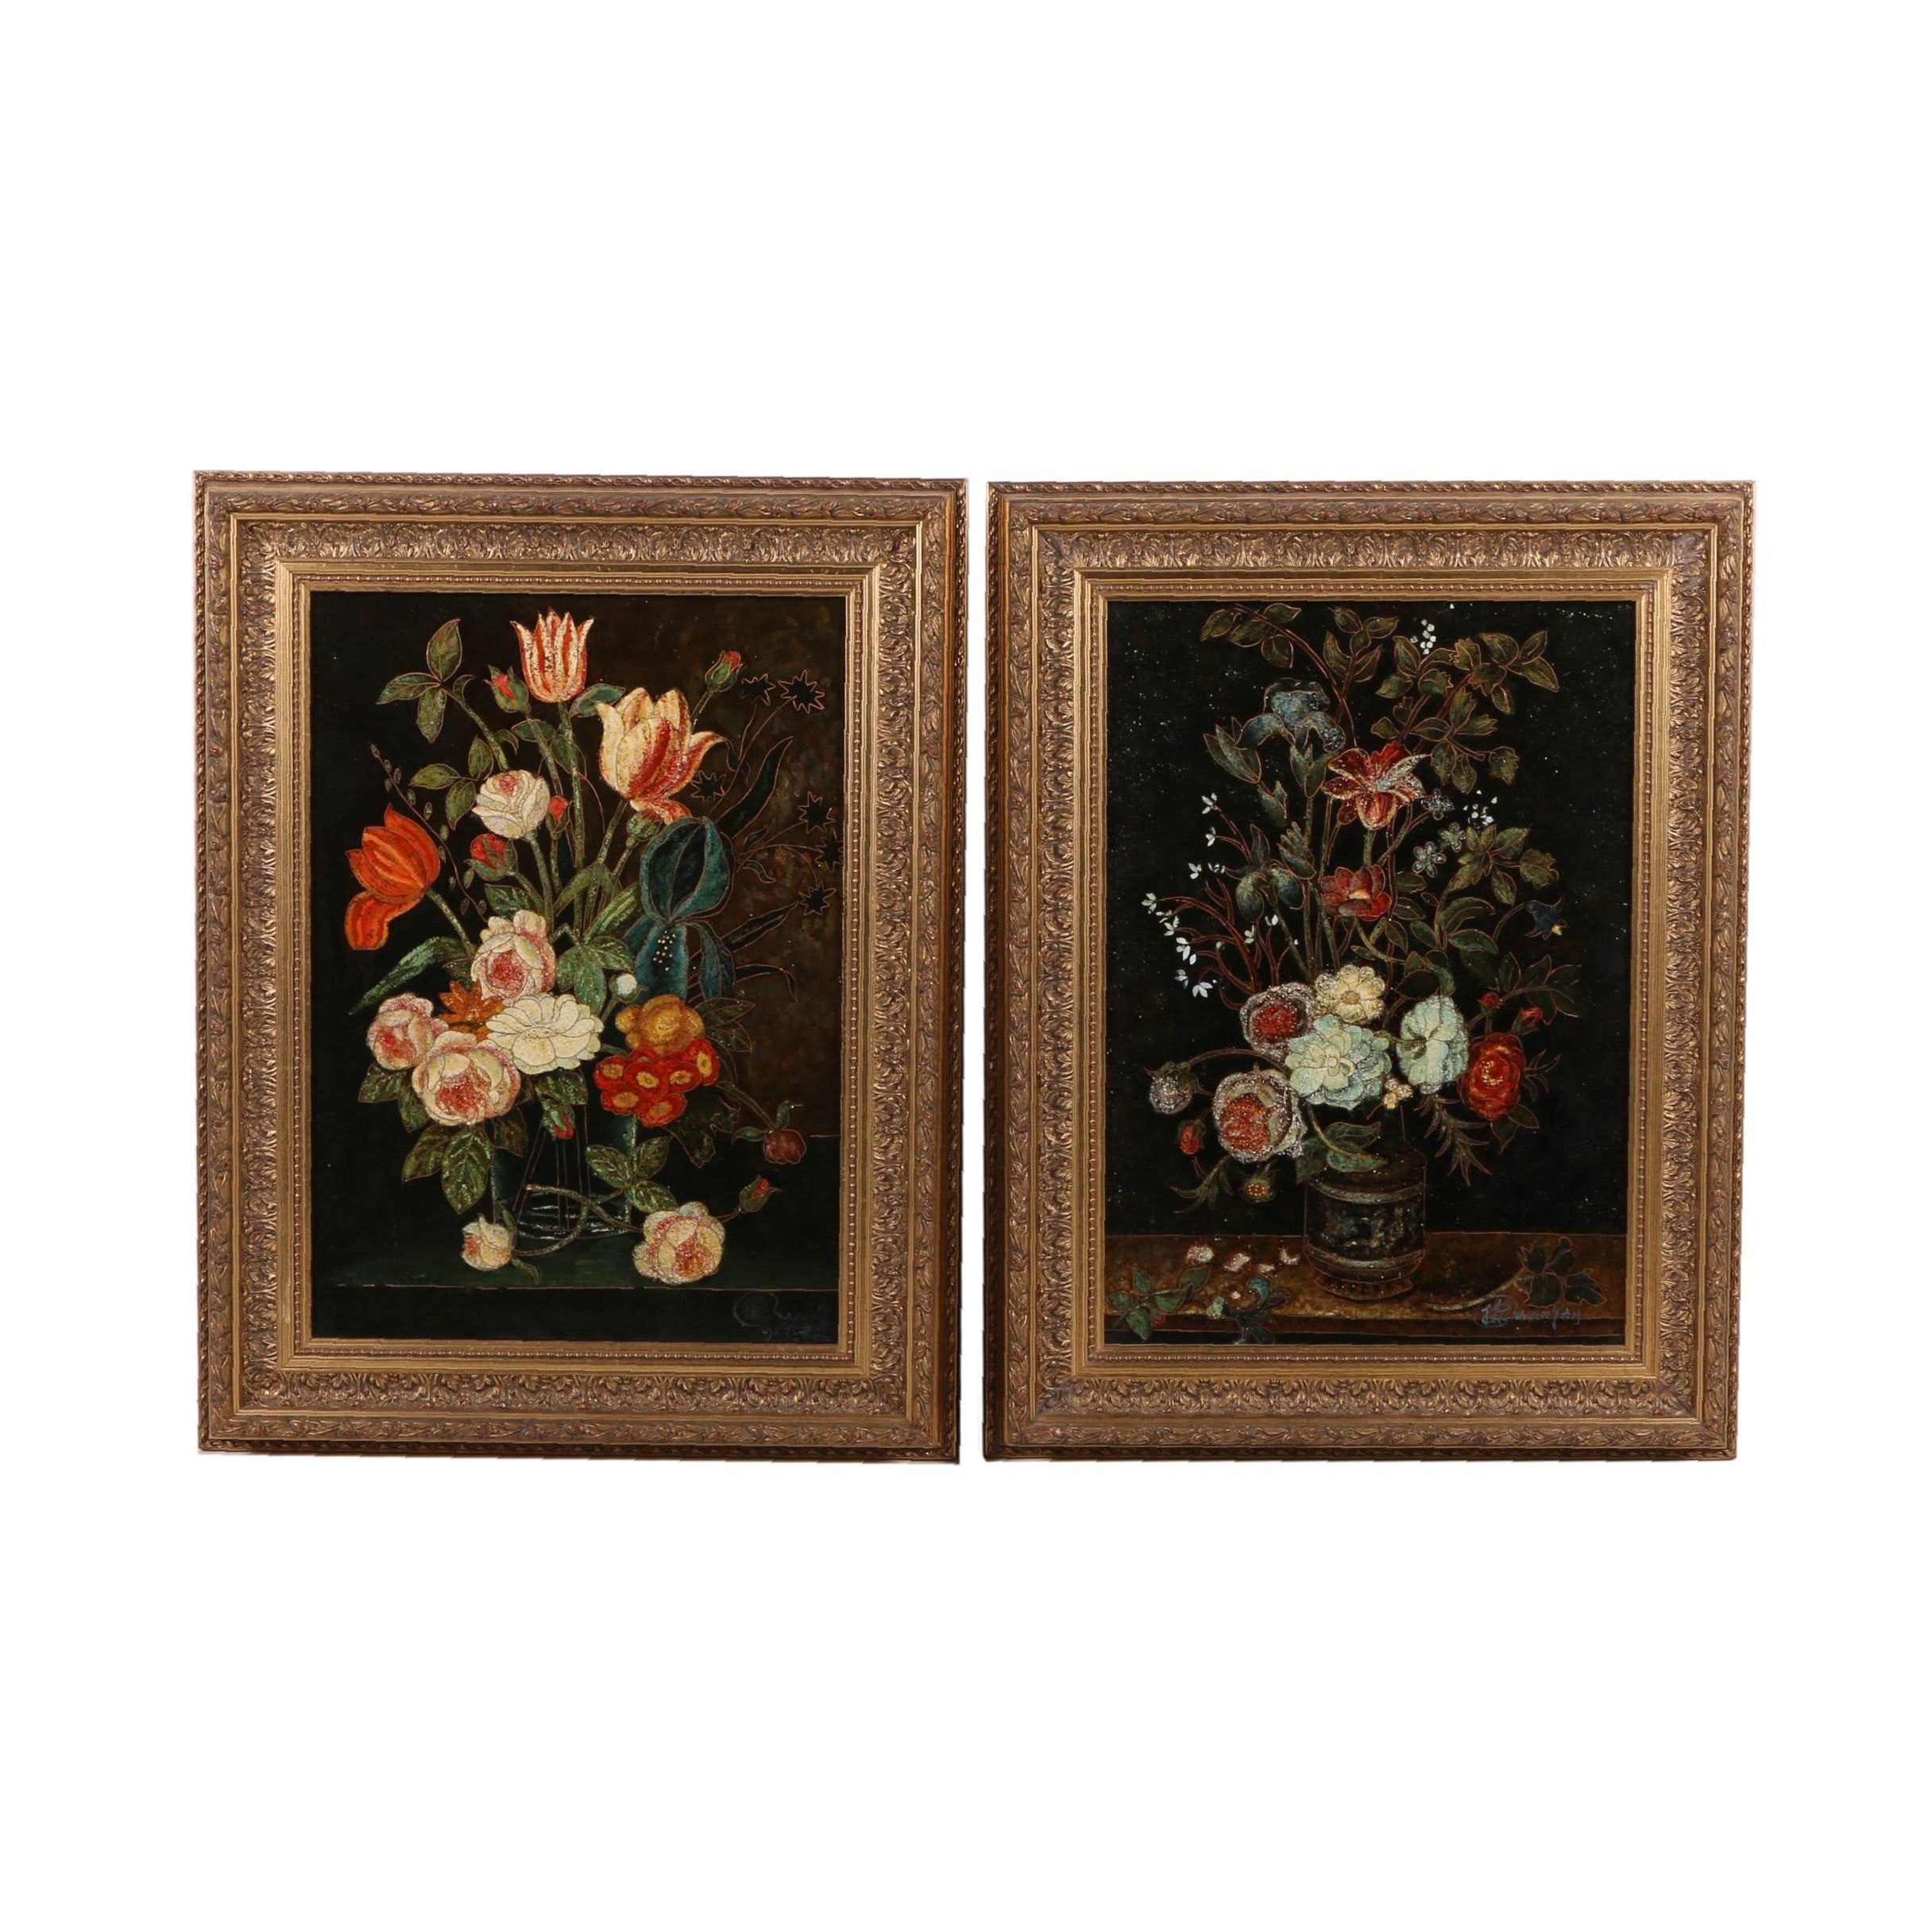 Pair of Enamel on Wood Still Life Compositions